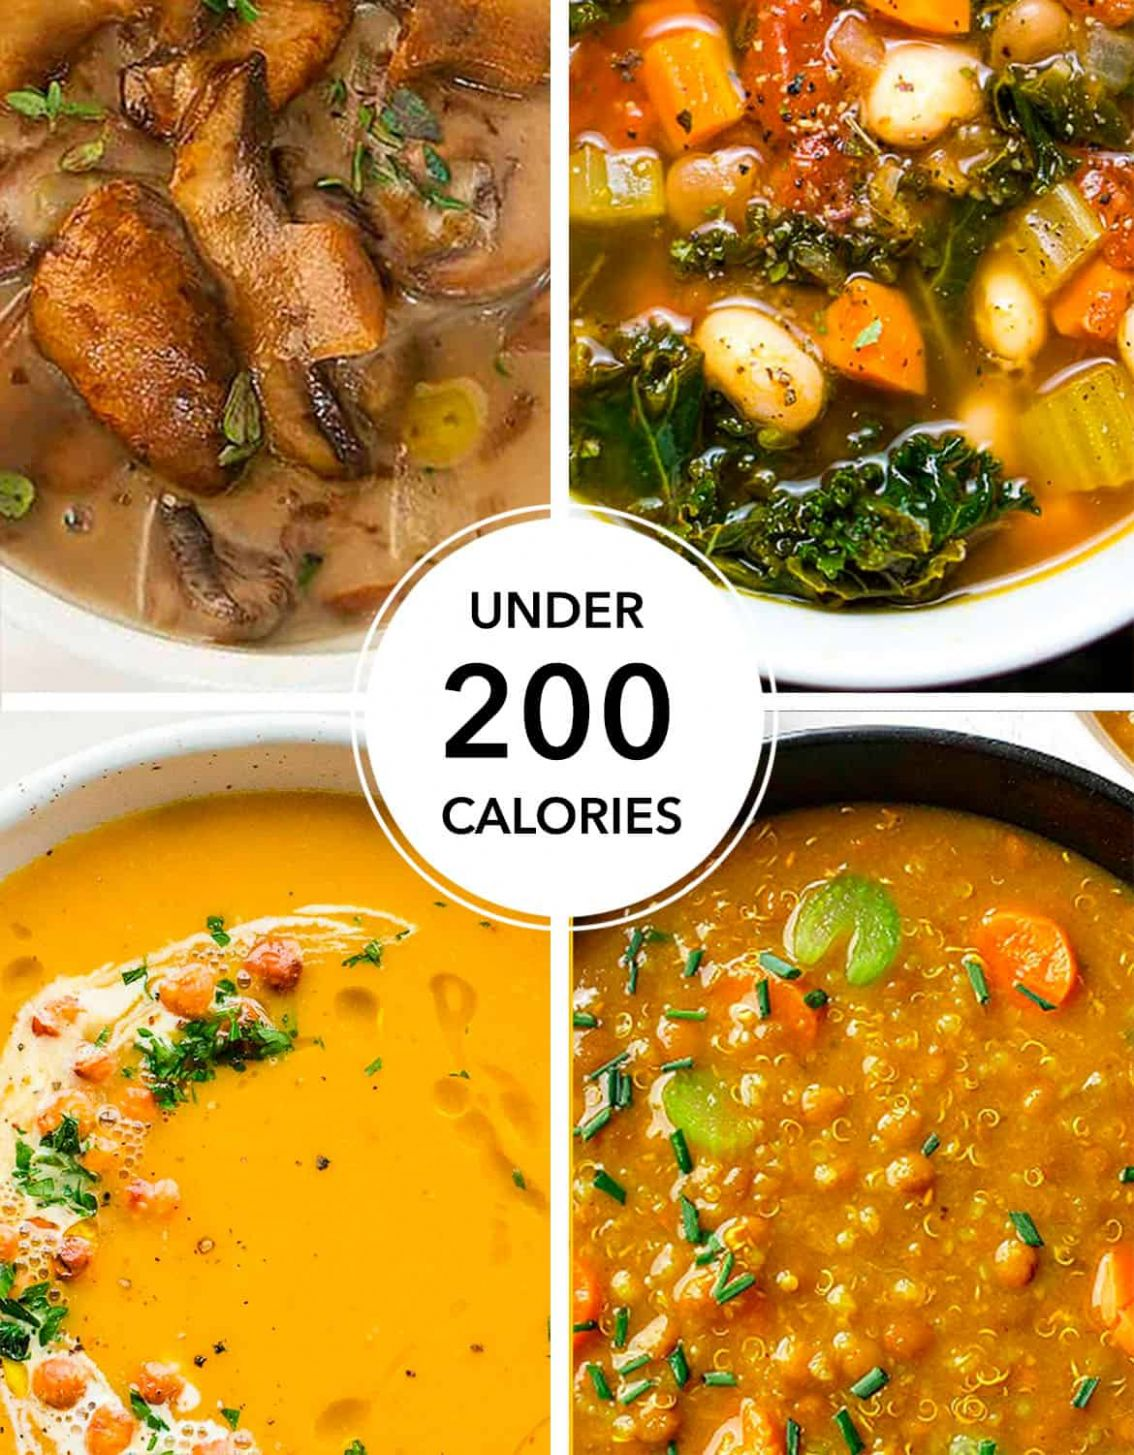 11+ HEALTHY WEIGHT LOSS SOUPS (UNDER 11 CALORIES) - The clever meal